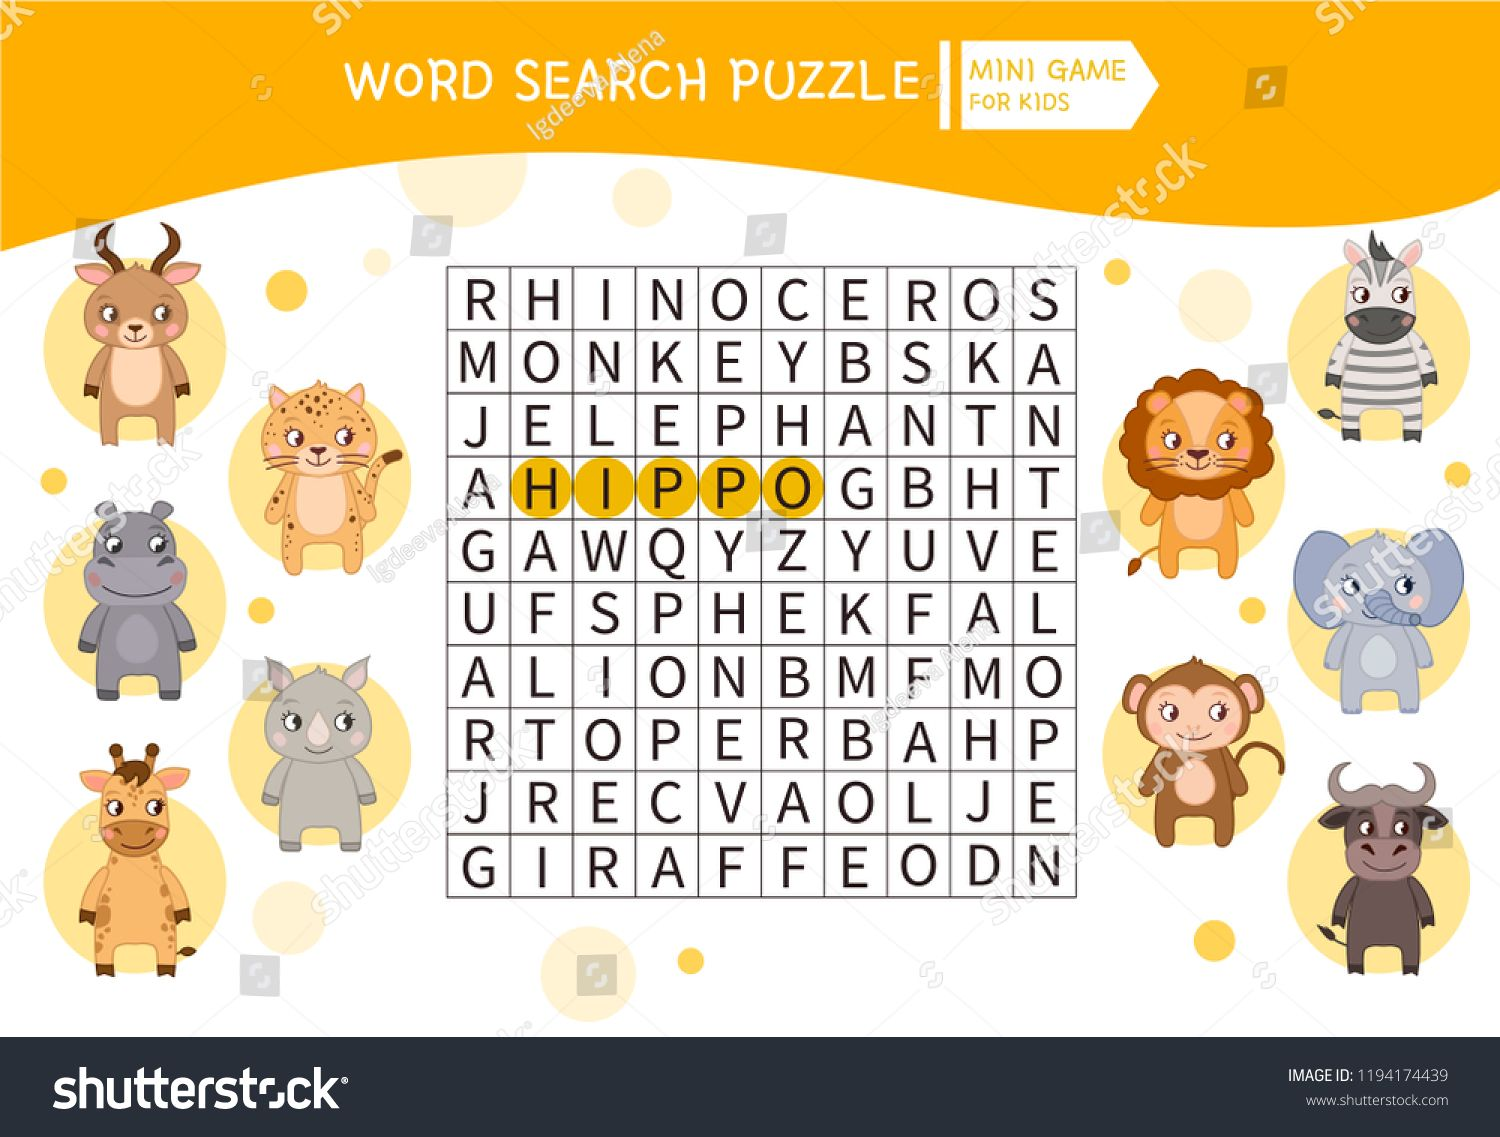 Educational Game For Kids Word Search Puzzle With Cute African Animals Kids Activity Sheet Im Word Games For Kids Activity Sheets For Kids Kids Word Search